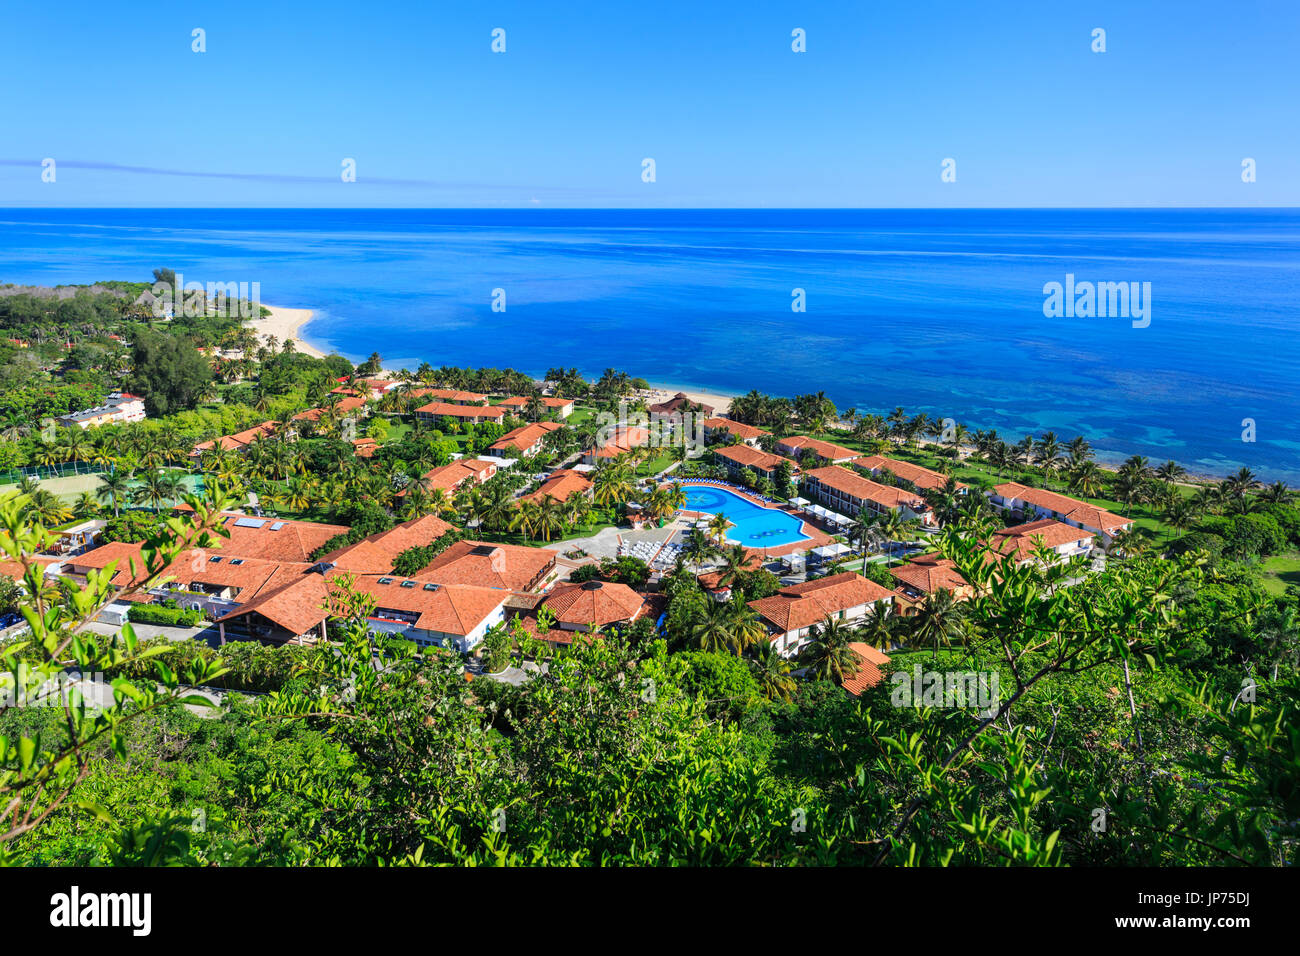 Memories Jibacoa Hotel with pool and beach from above, Cuba - Stock Image